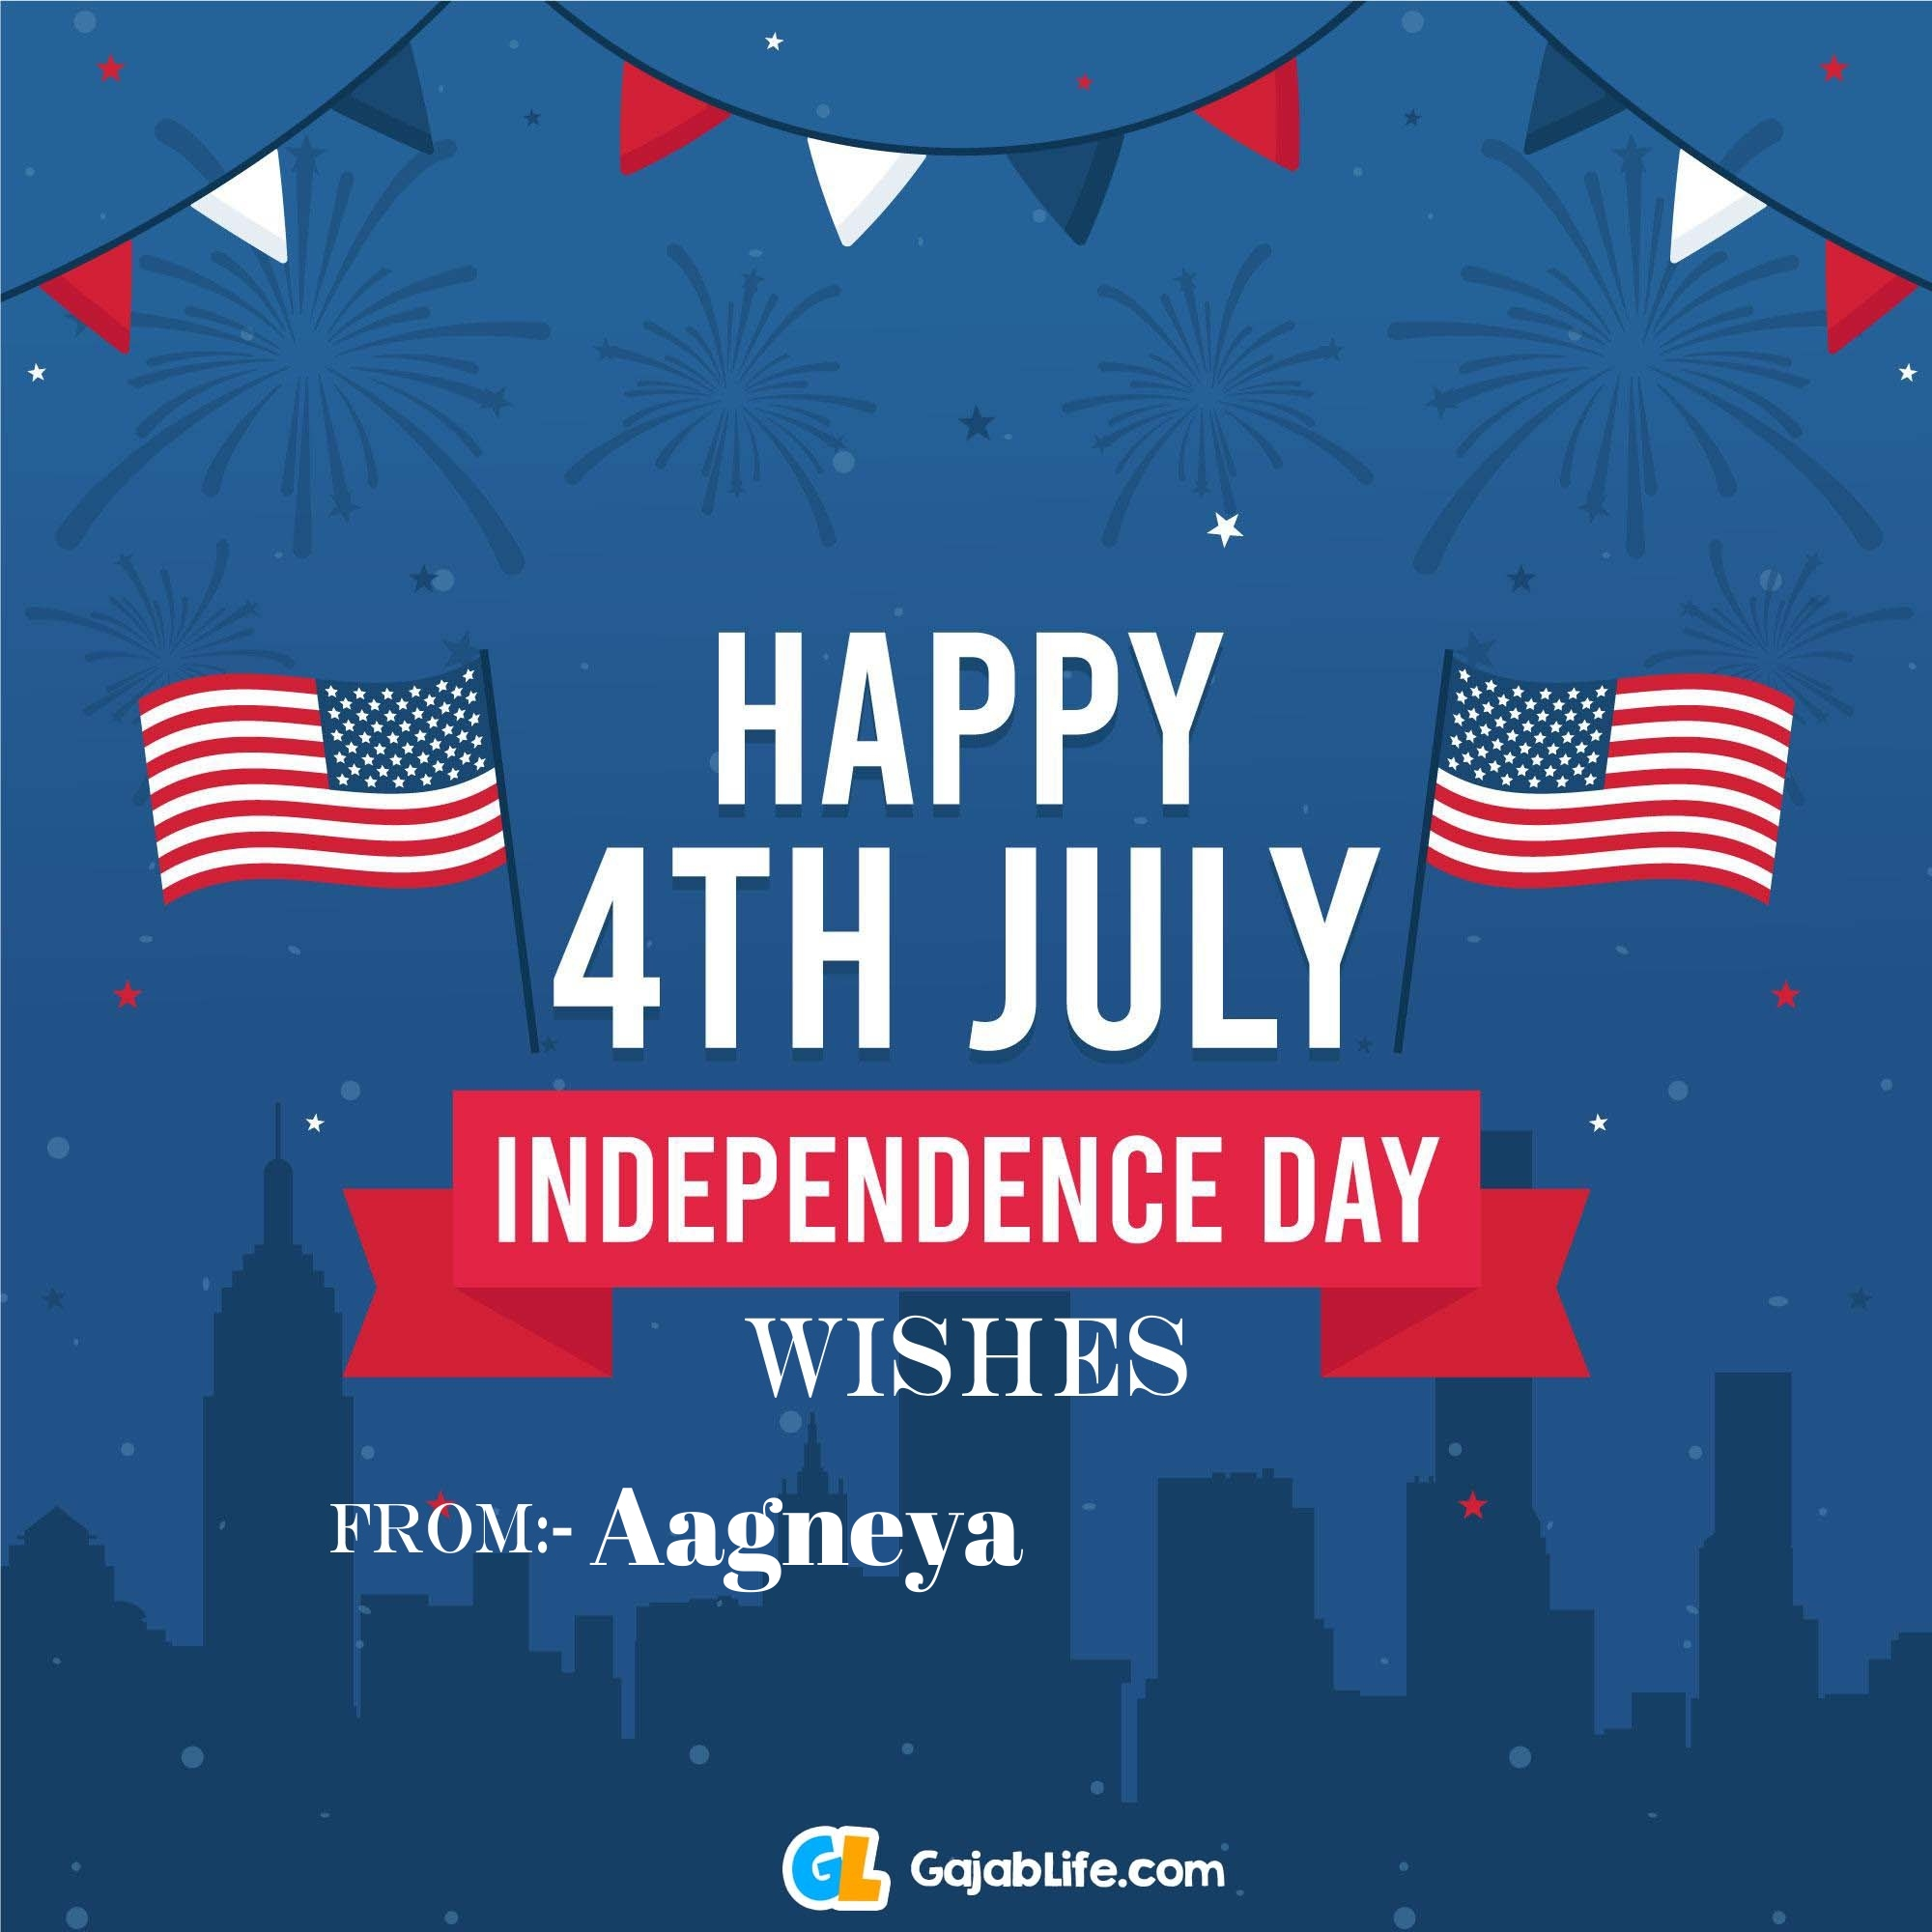 Aagneya happy independence day united states of america images